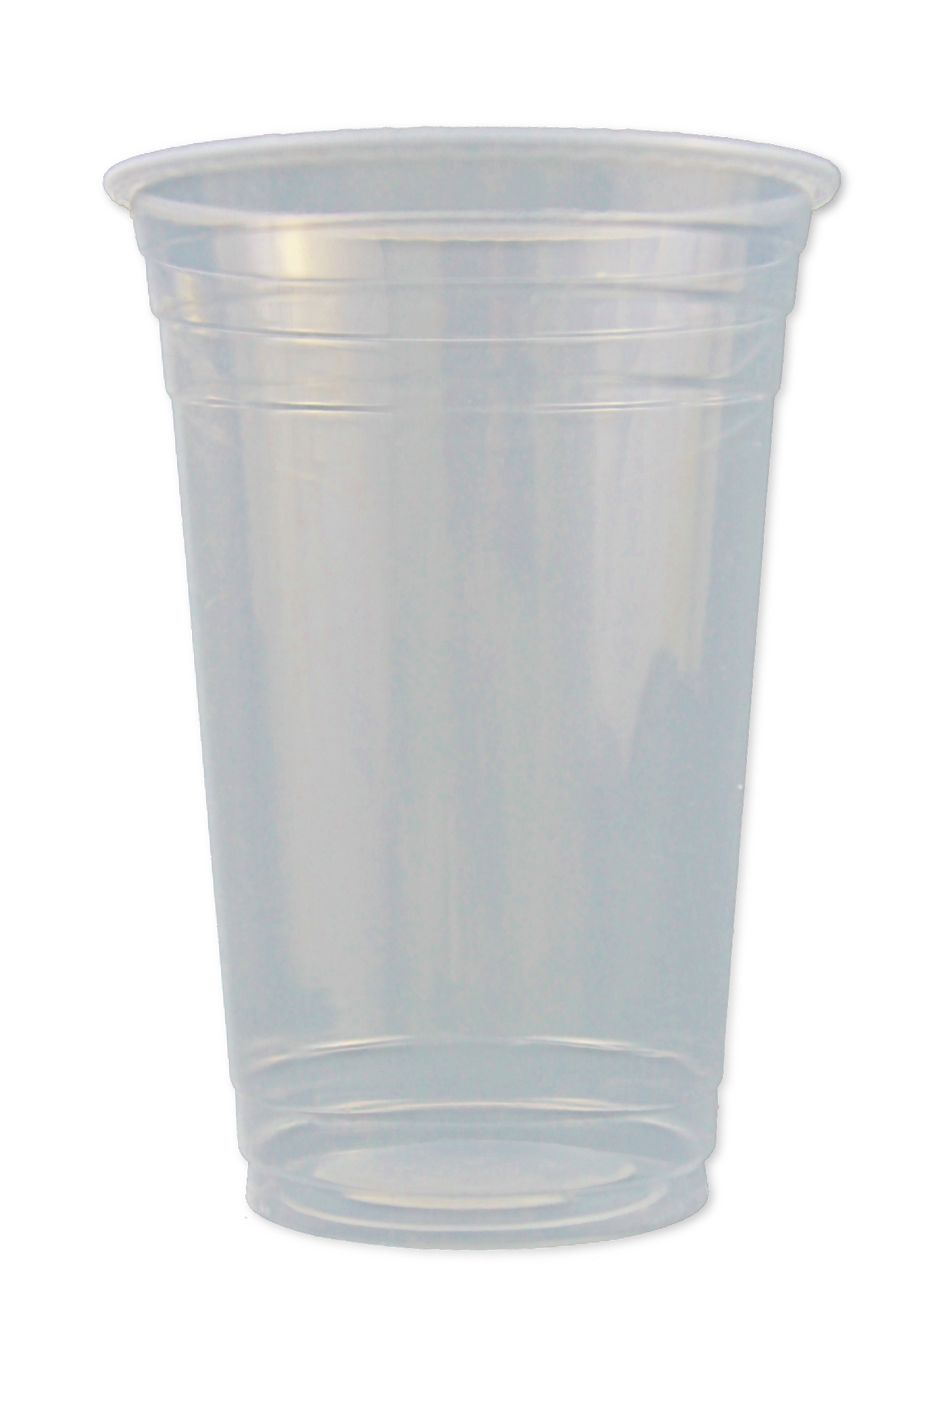 Capri Clear Plastic Cup 18oz or 540ml